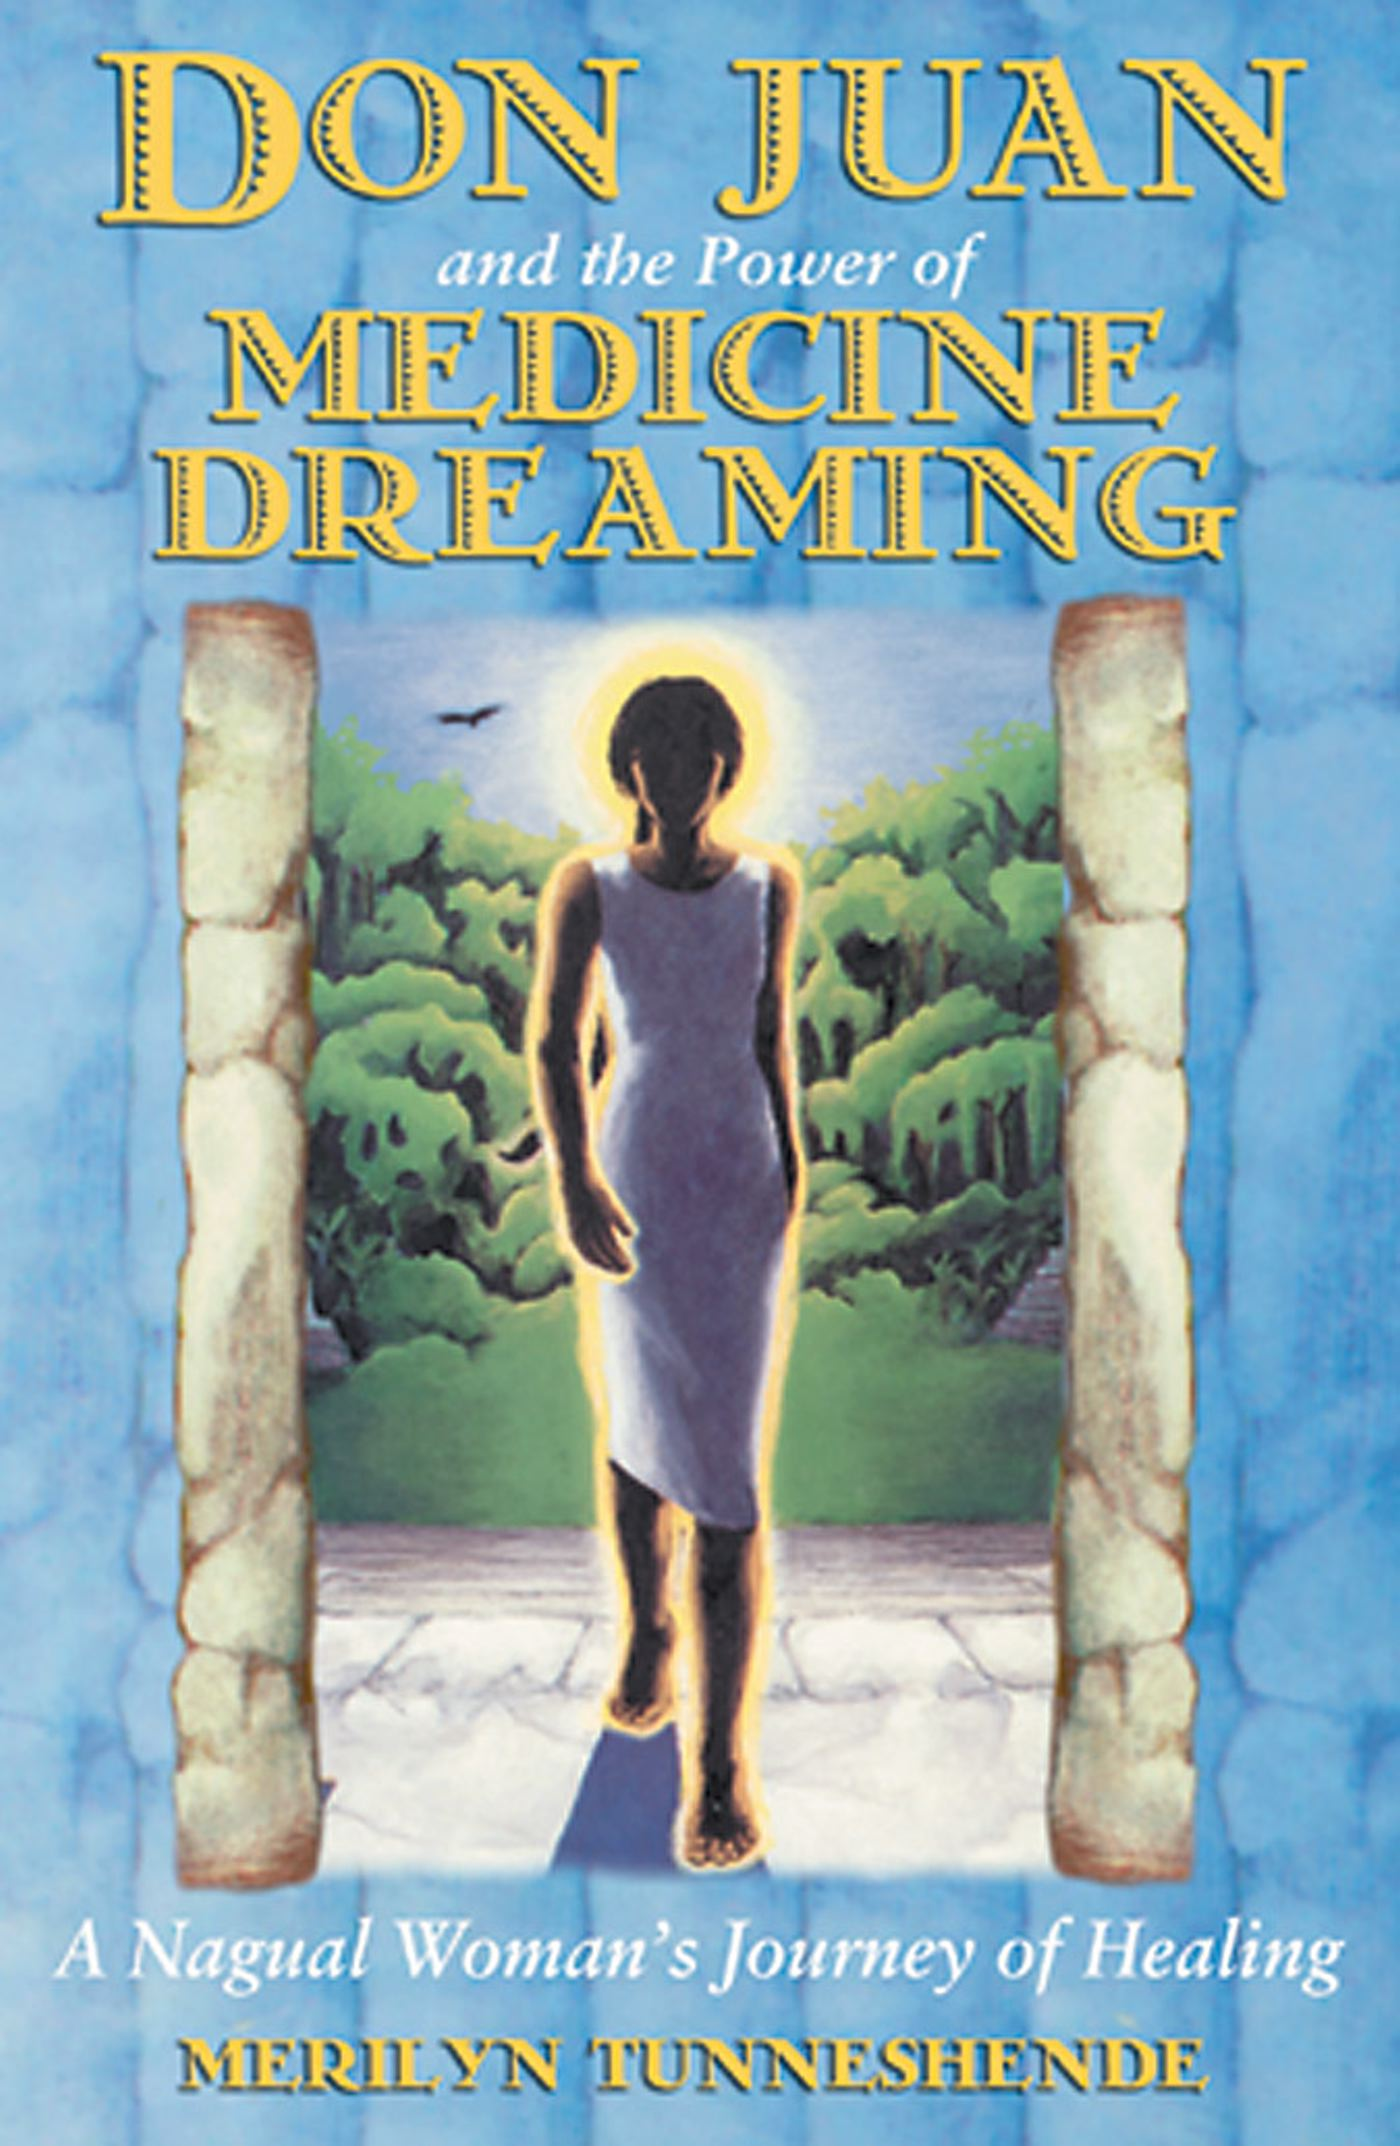 Don juan and the power of medicine dreaming 9781879181939 hr